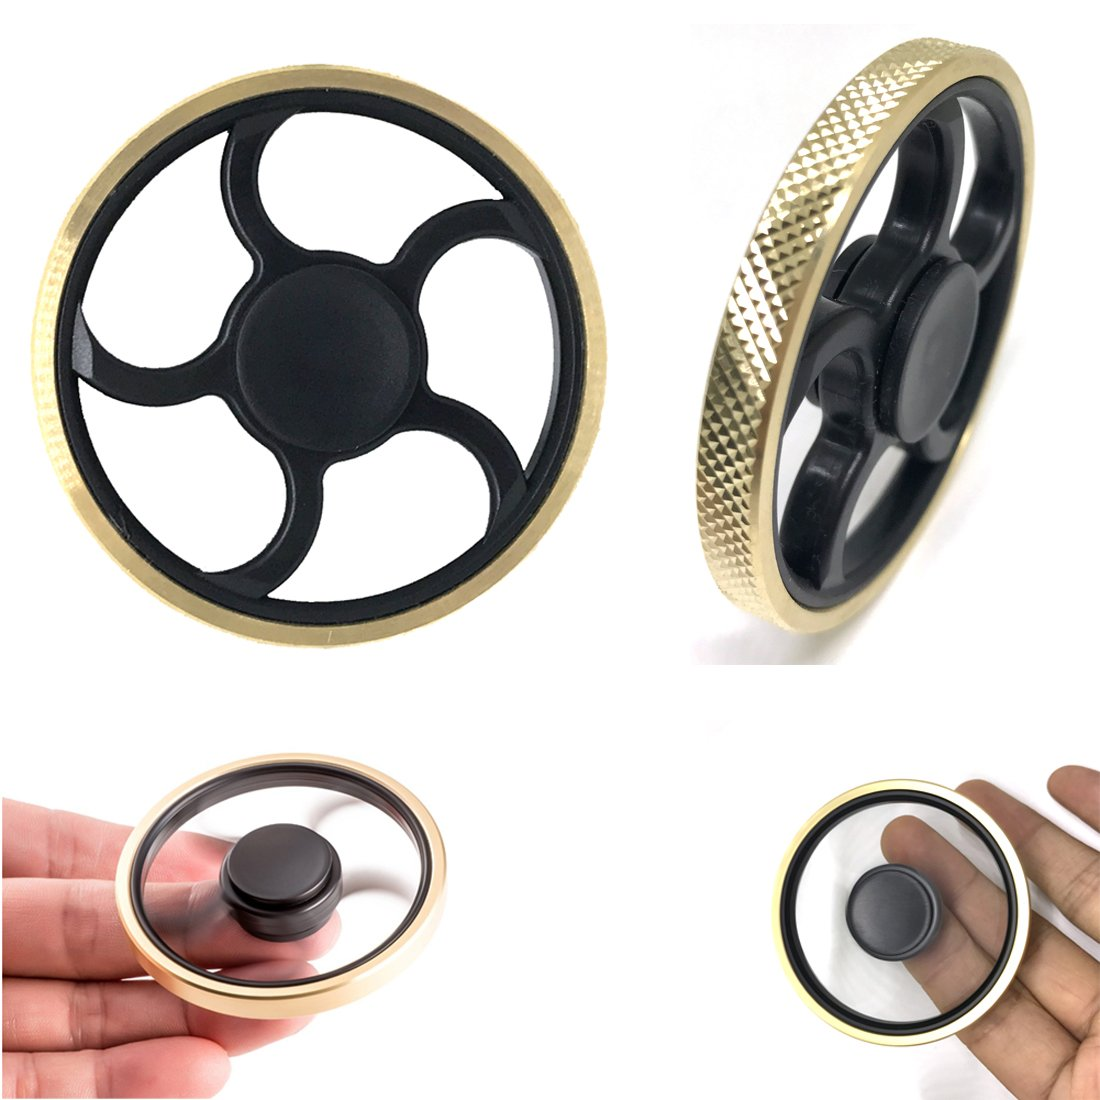 Echodream Fidget Hand Spinners Golden Round Frame EDC Toys with Great Bearing Metal Material High Speed up To 4 Mins Best for ADD ADHD Killing Time(Sweet Dream)